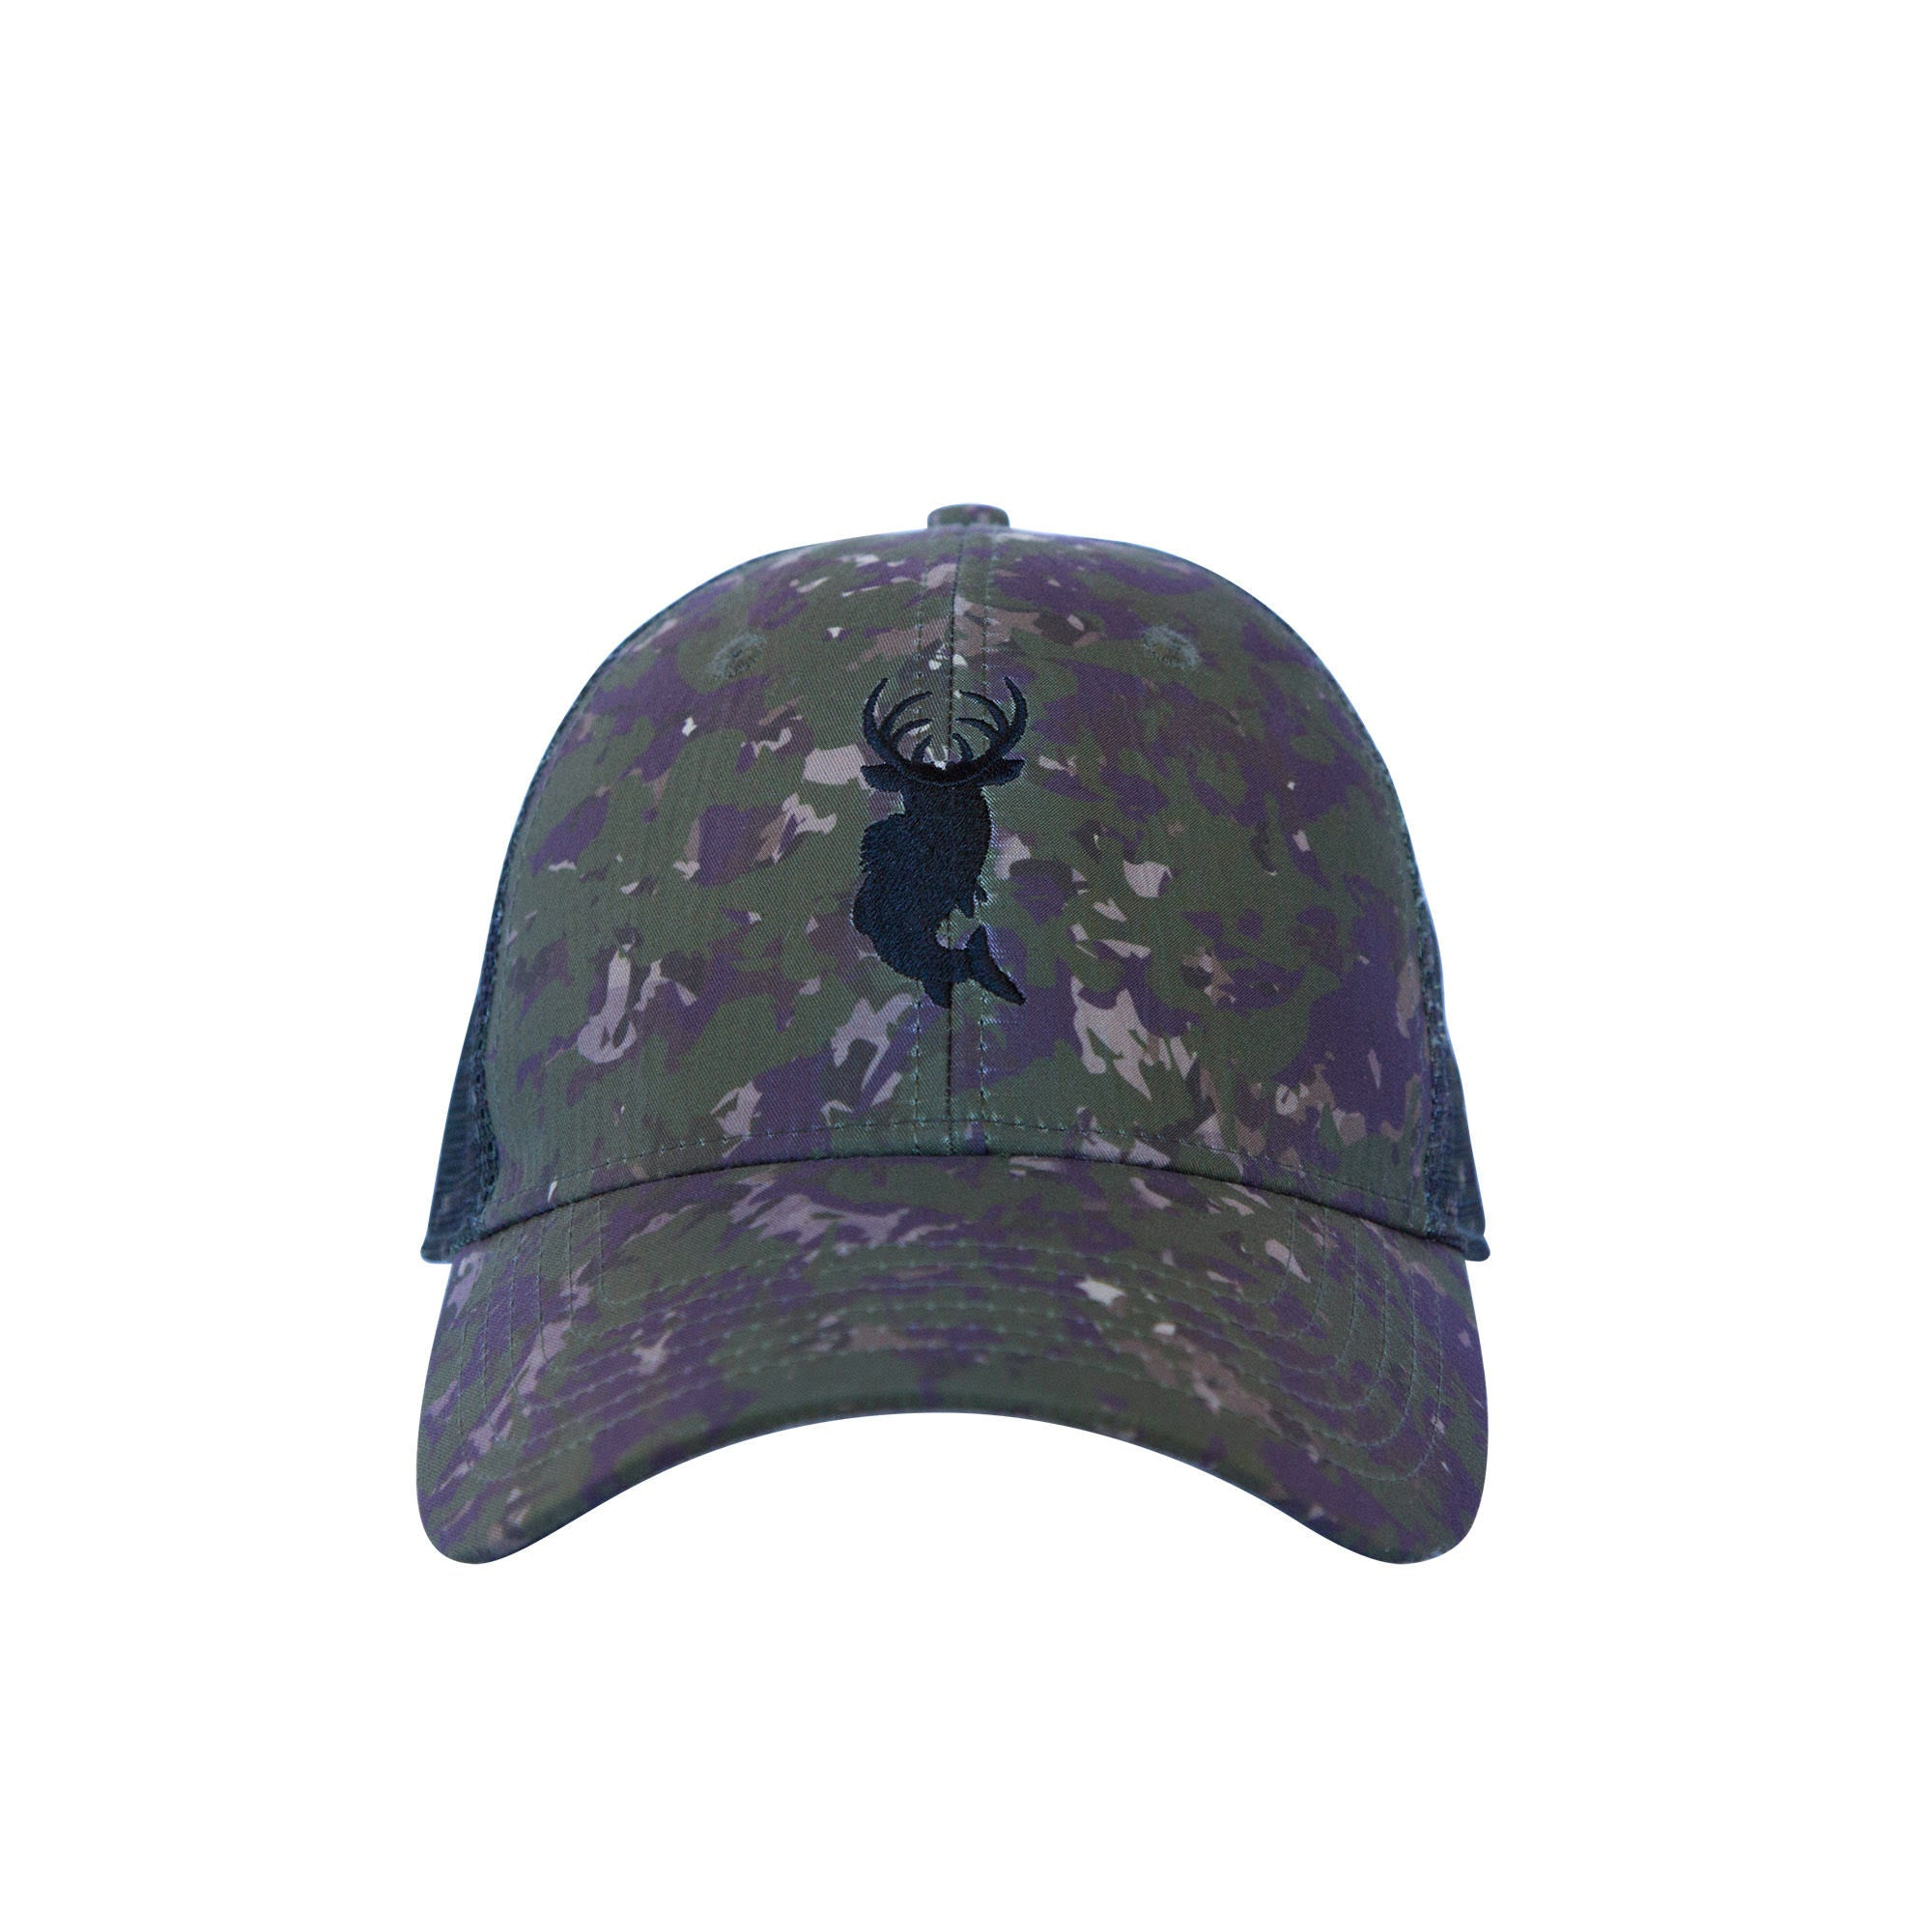 Natrona Camo Hunting System Mesh Hat